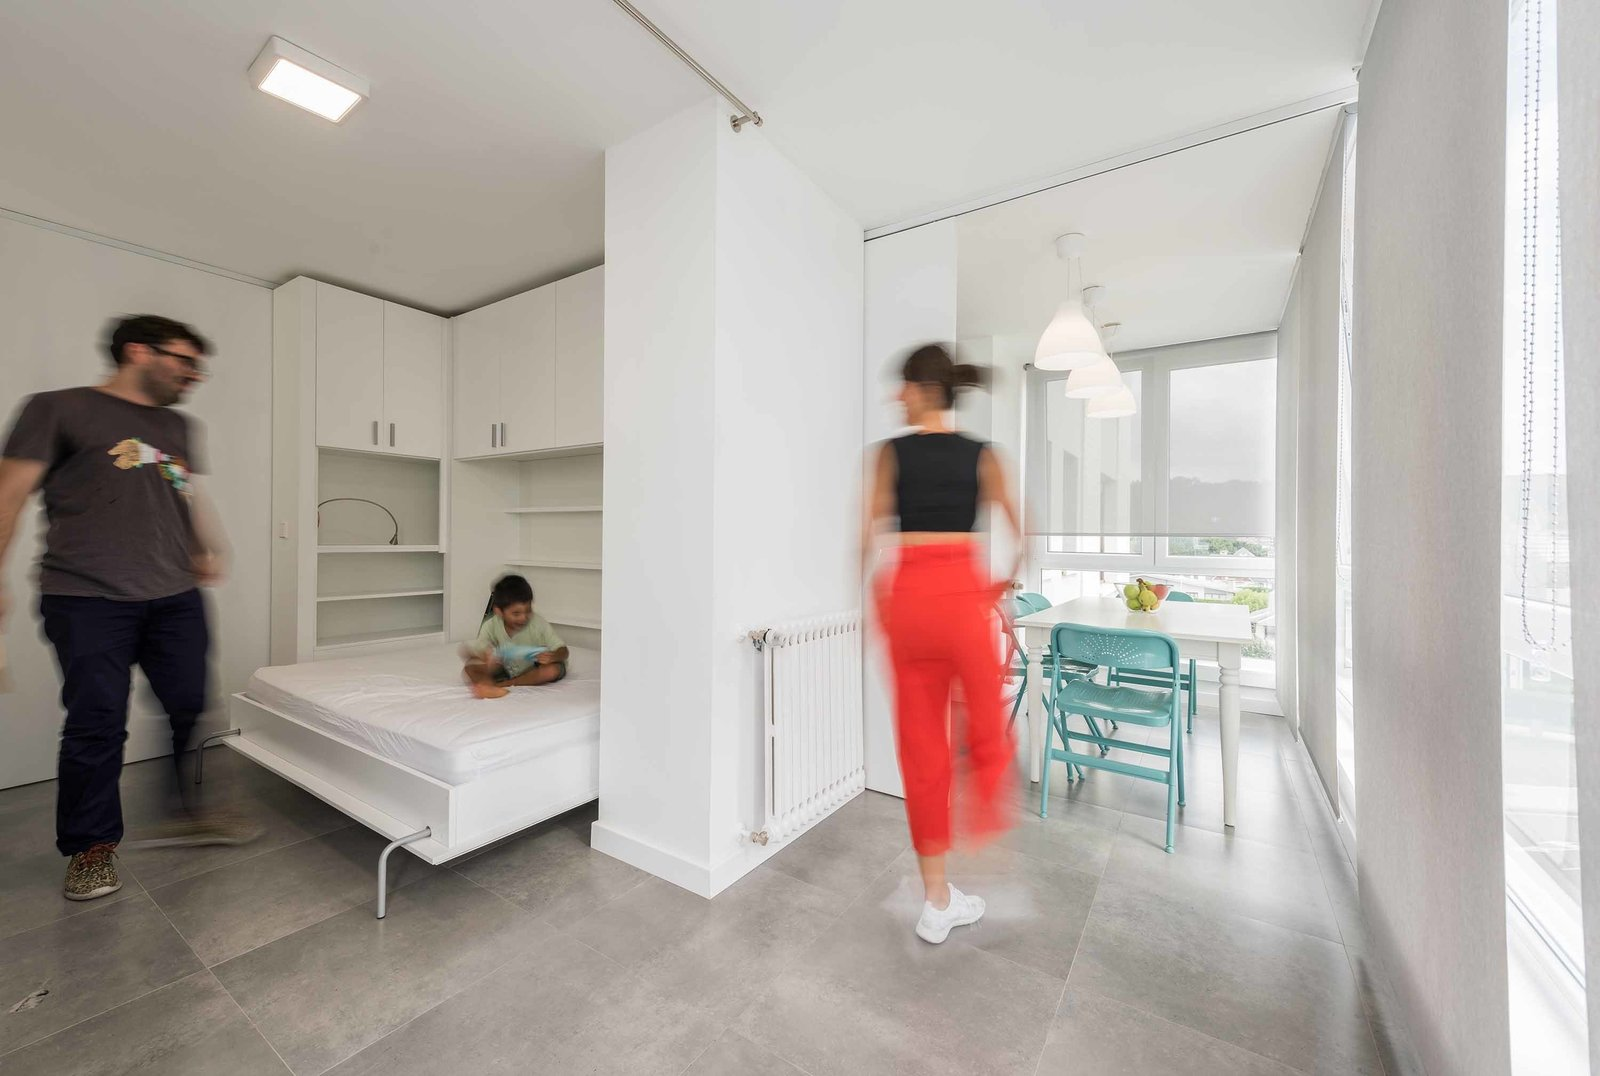 Movable Walls Instantly Transform A Small Vacation Home From Two Bedroom To Studio